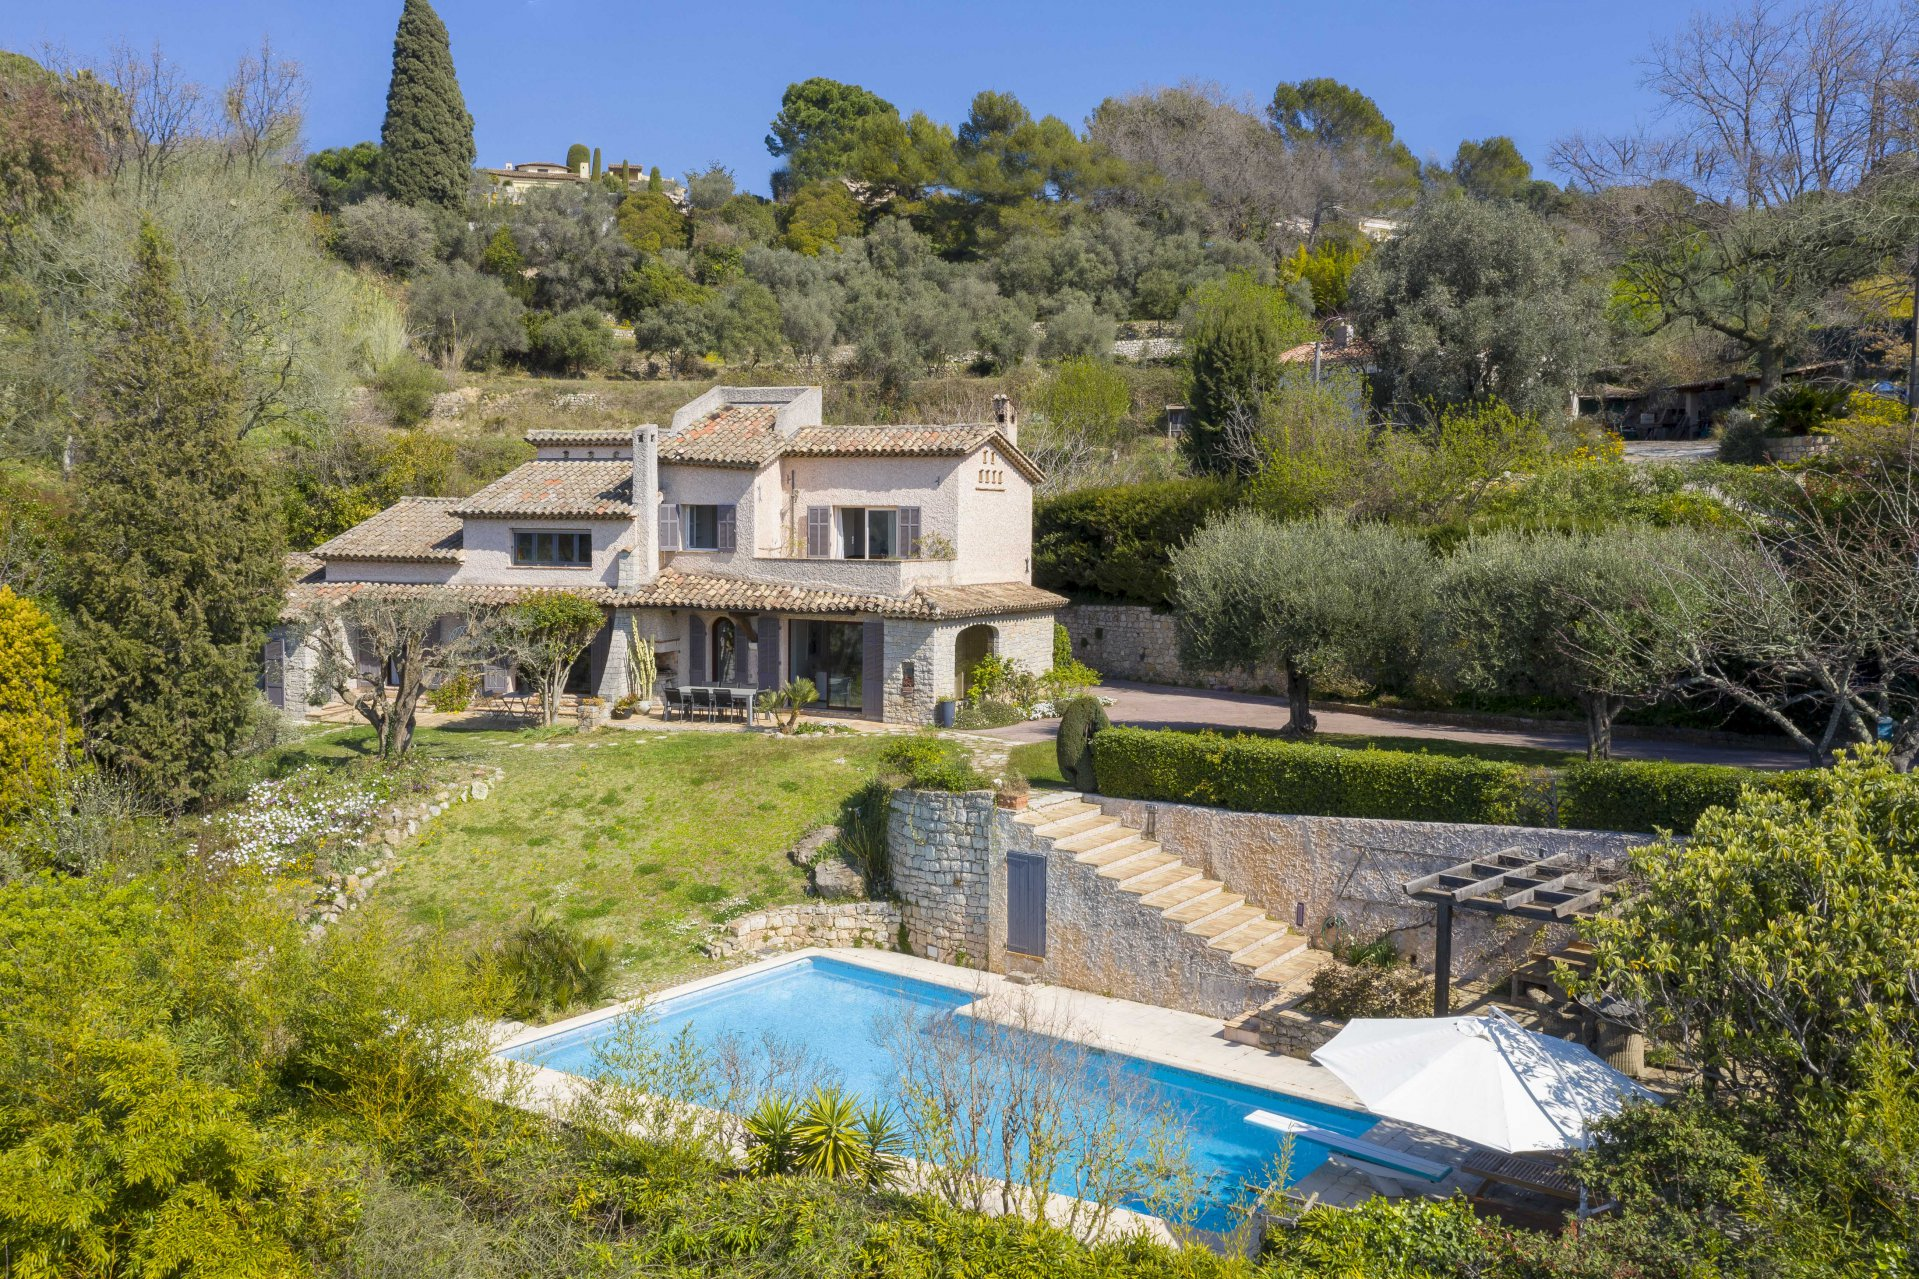 MOUGINS - BEAUTIFUL PROVENCAL VILLA